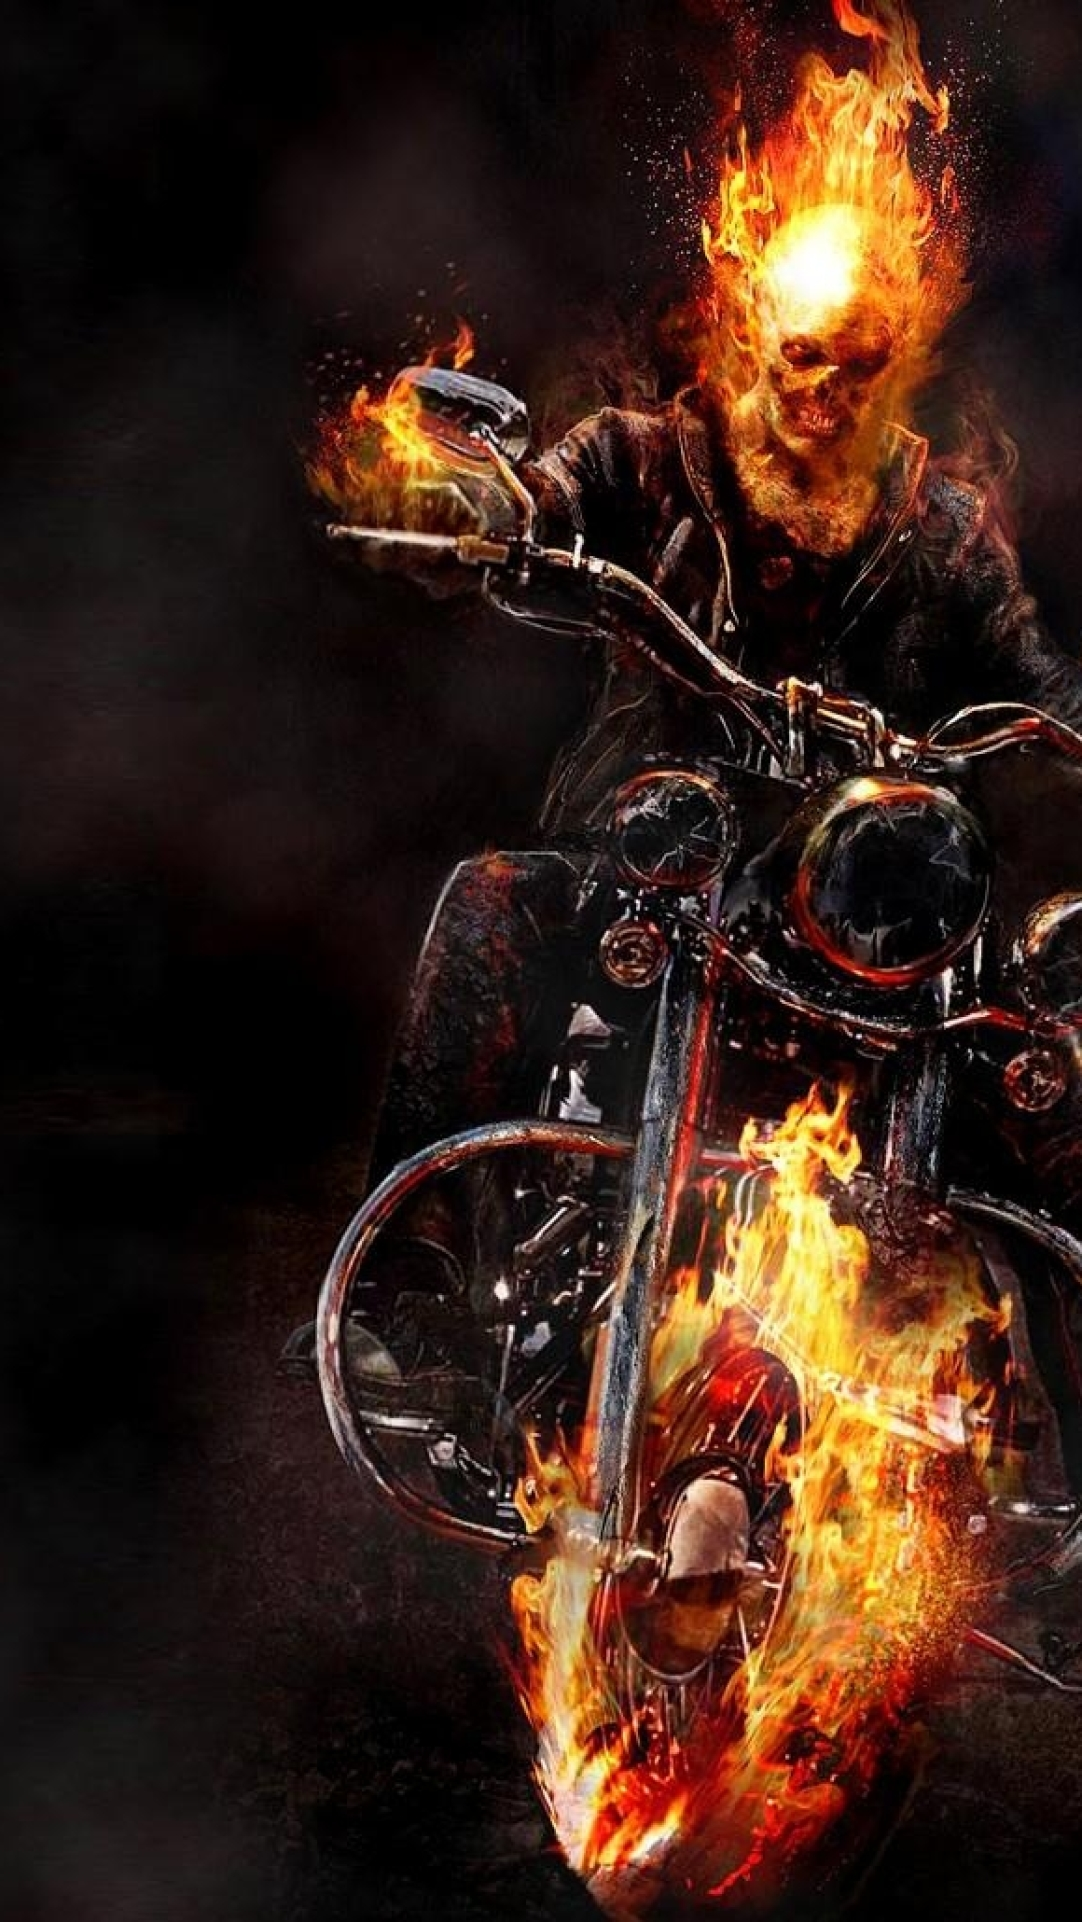 Ghost Rider Motorcycle Fire Wallpaper Hd Fantasy 4k Wallpapers Images Photos And Background